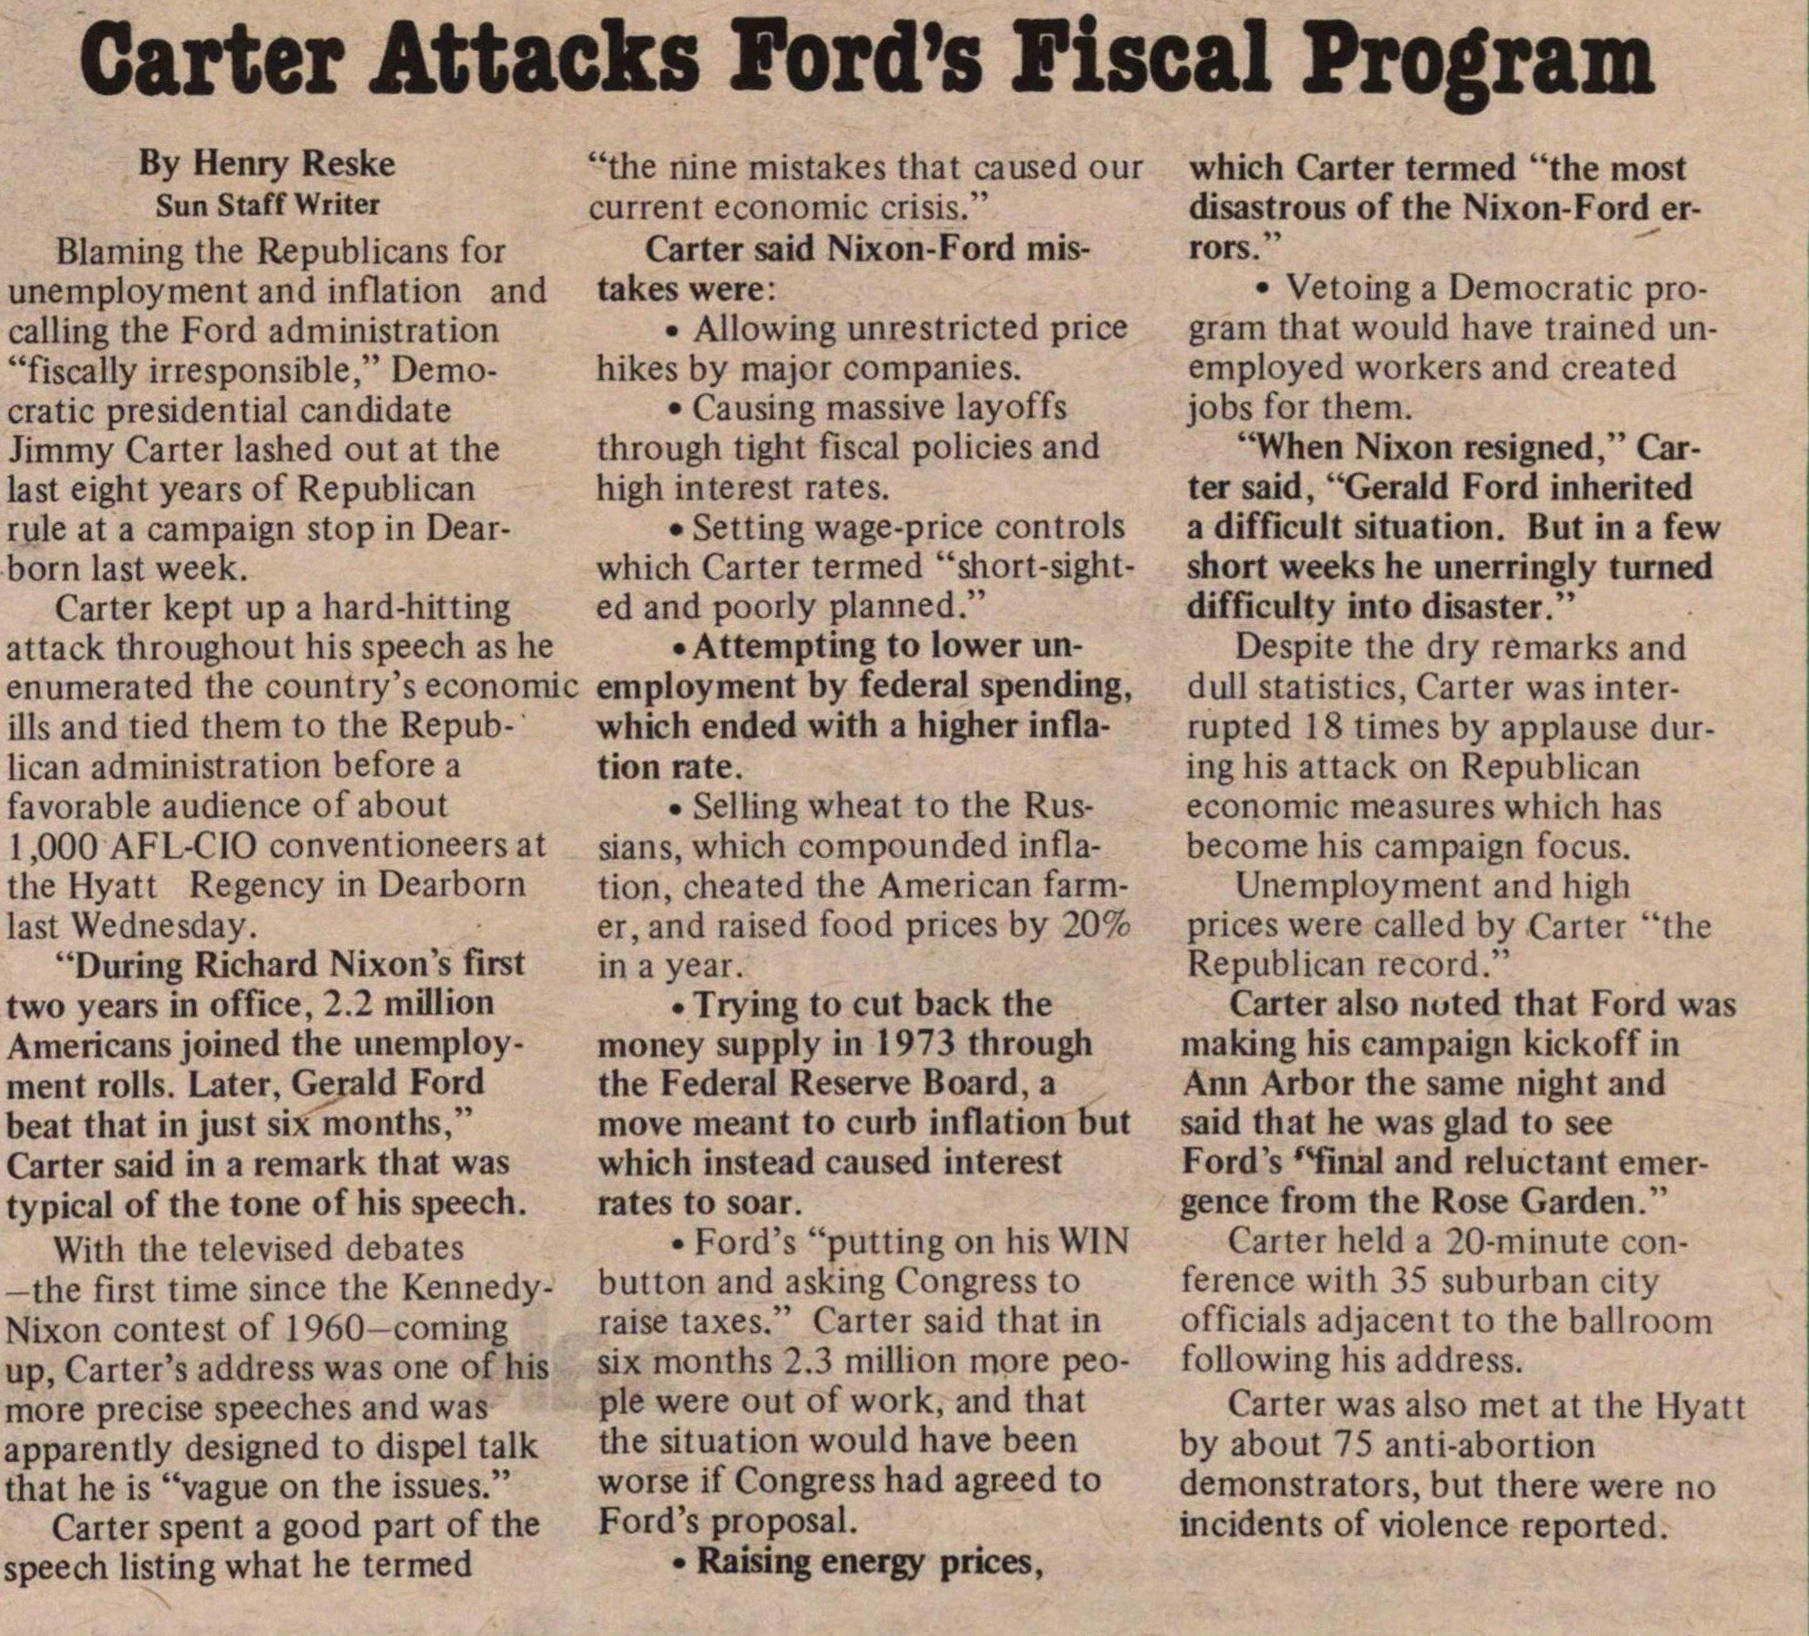 Carter Attacks Ford's Fiscal Program image